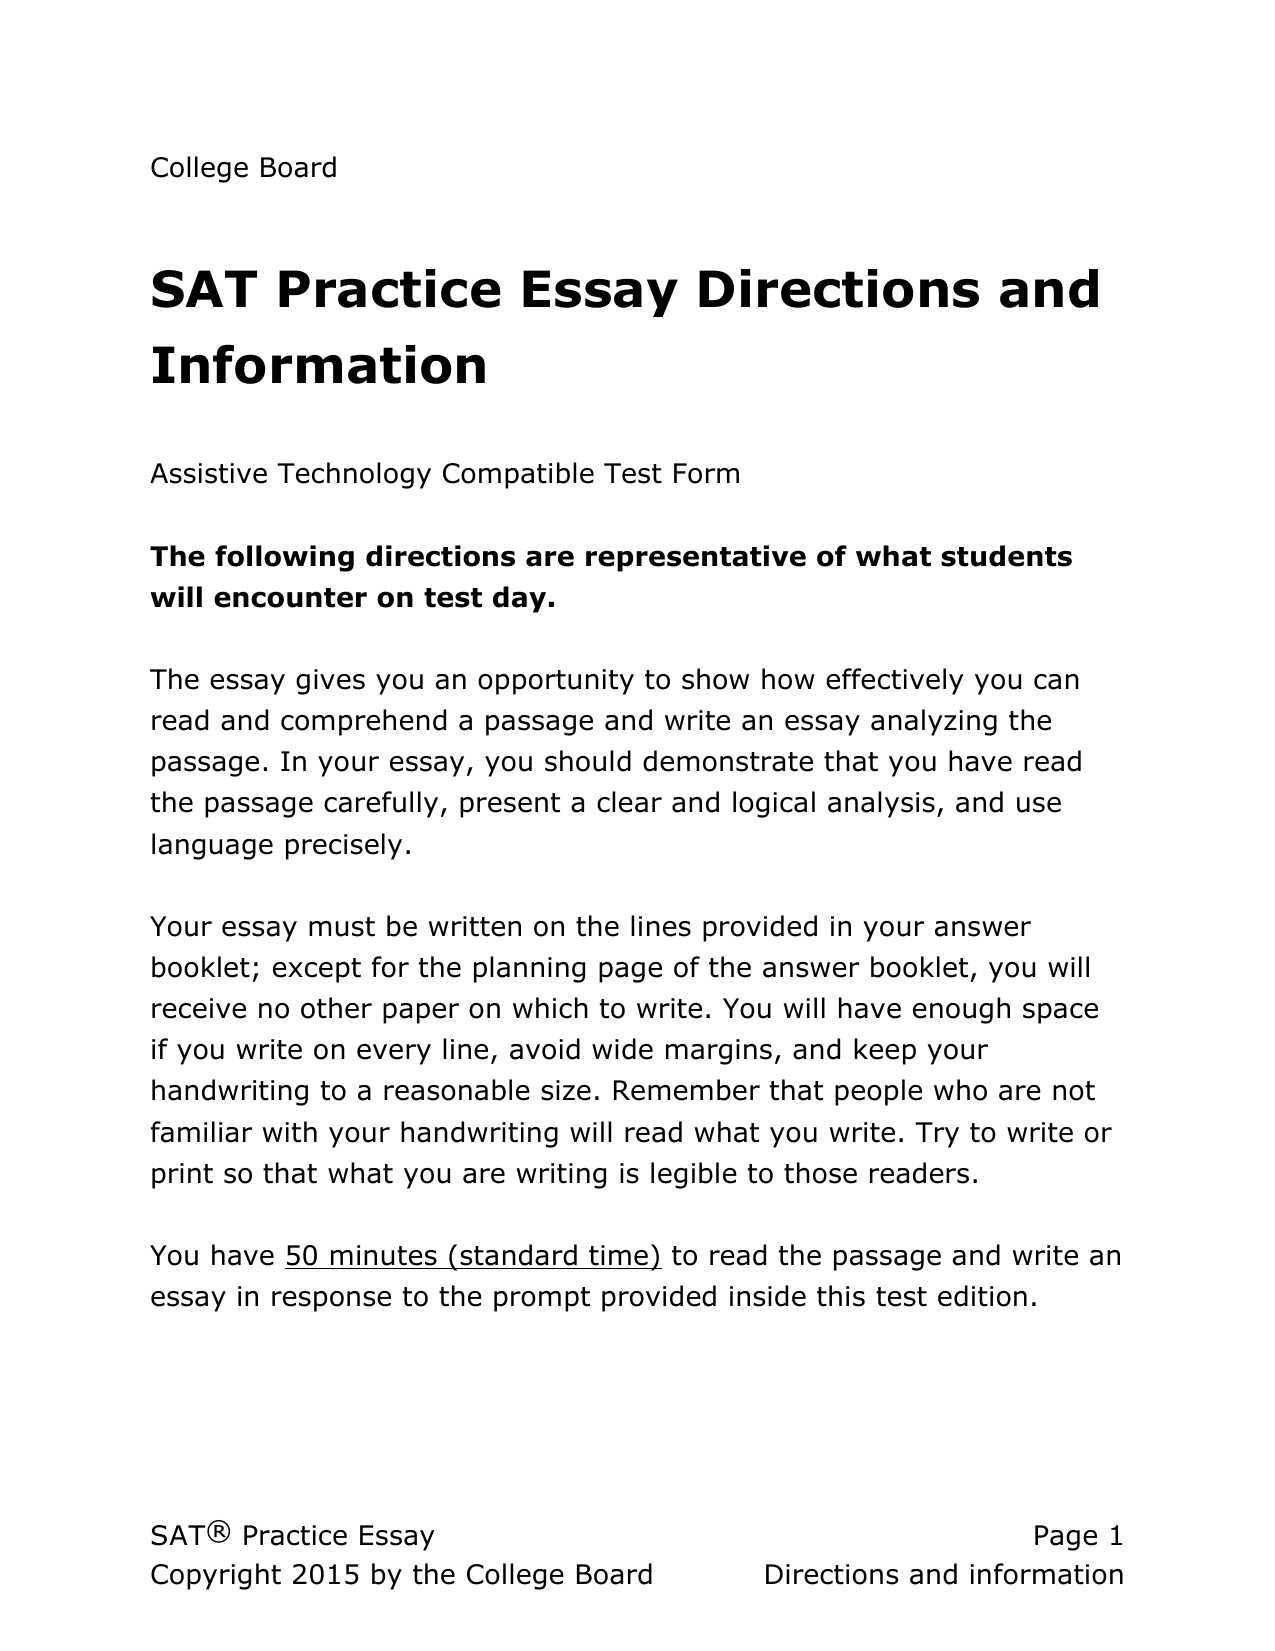 General Directions For Assistive Technology SAT Practice Essays